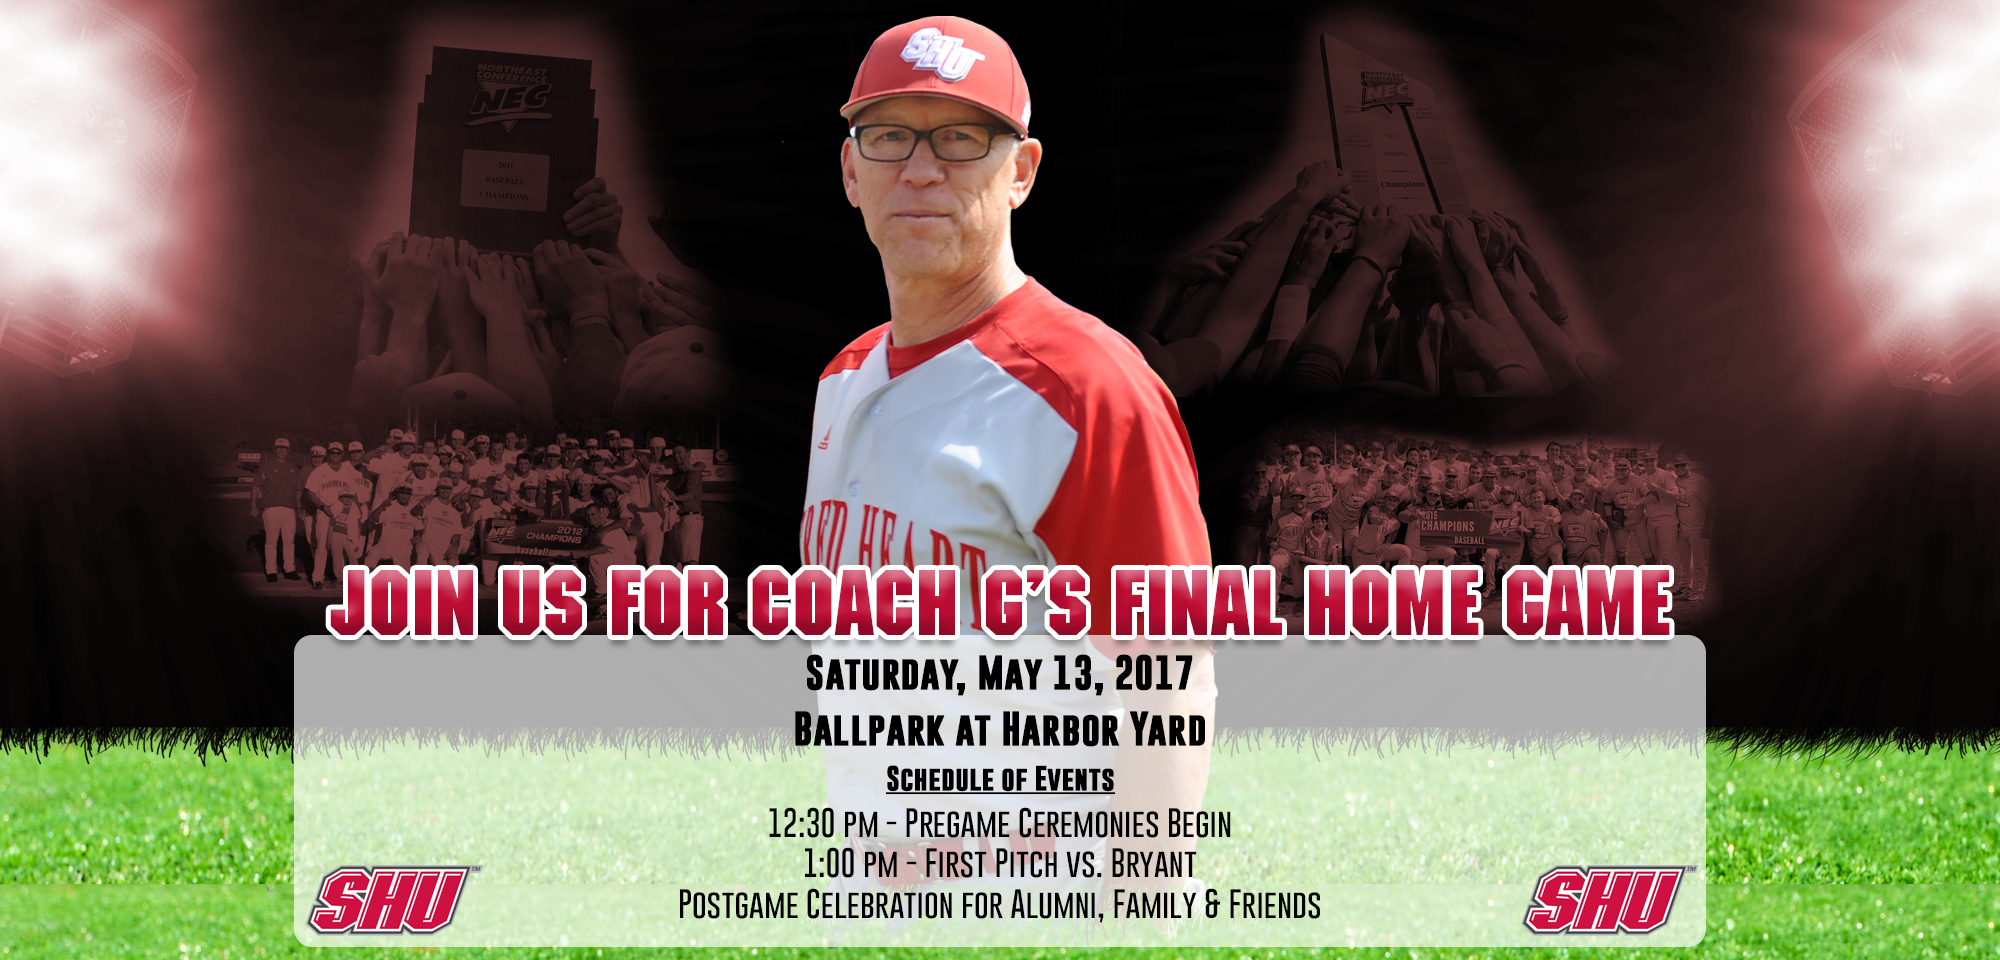 SHU to Hold Celebration for Coach Giaquinto's Final Home Game